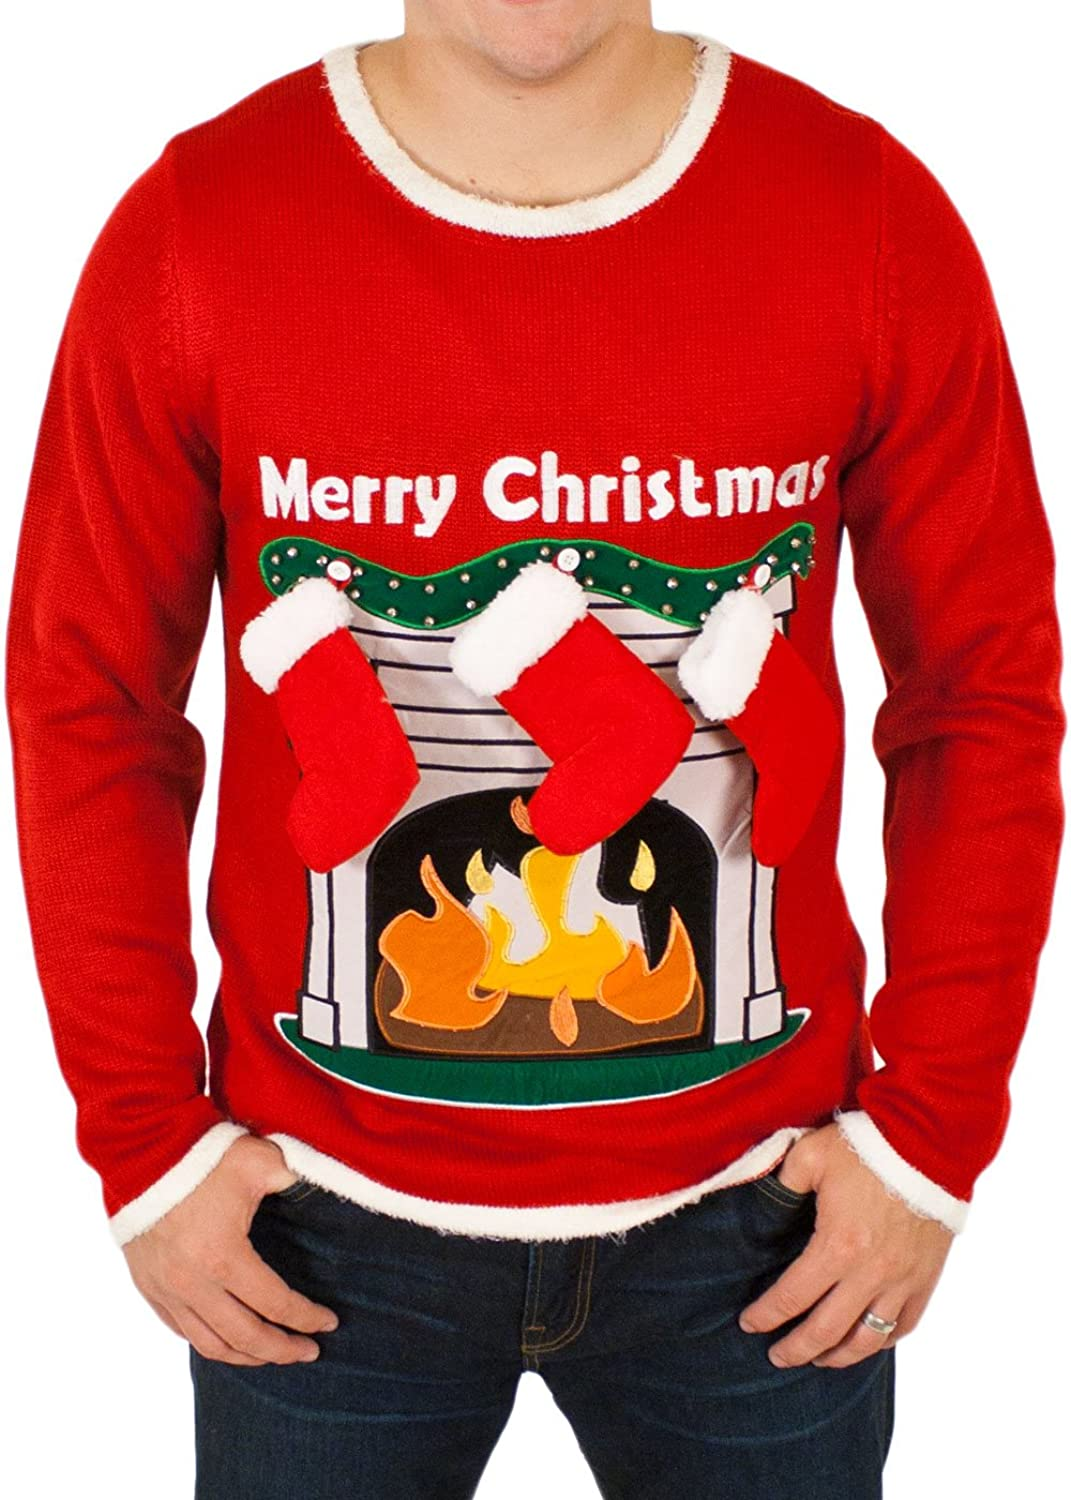 Amazon.com: Ugly Christmas Sweater - Lighted Fireplace Sweater ...